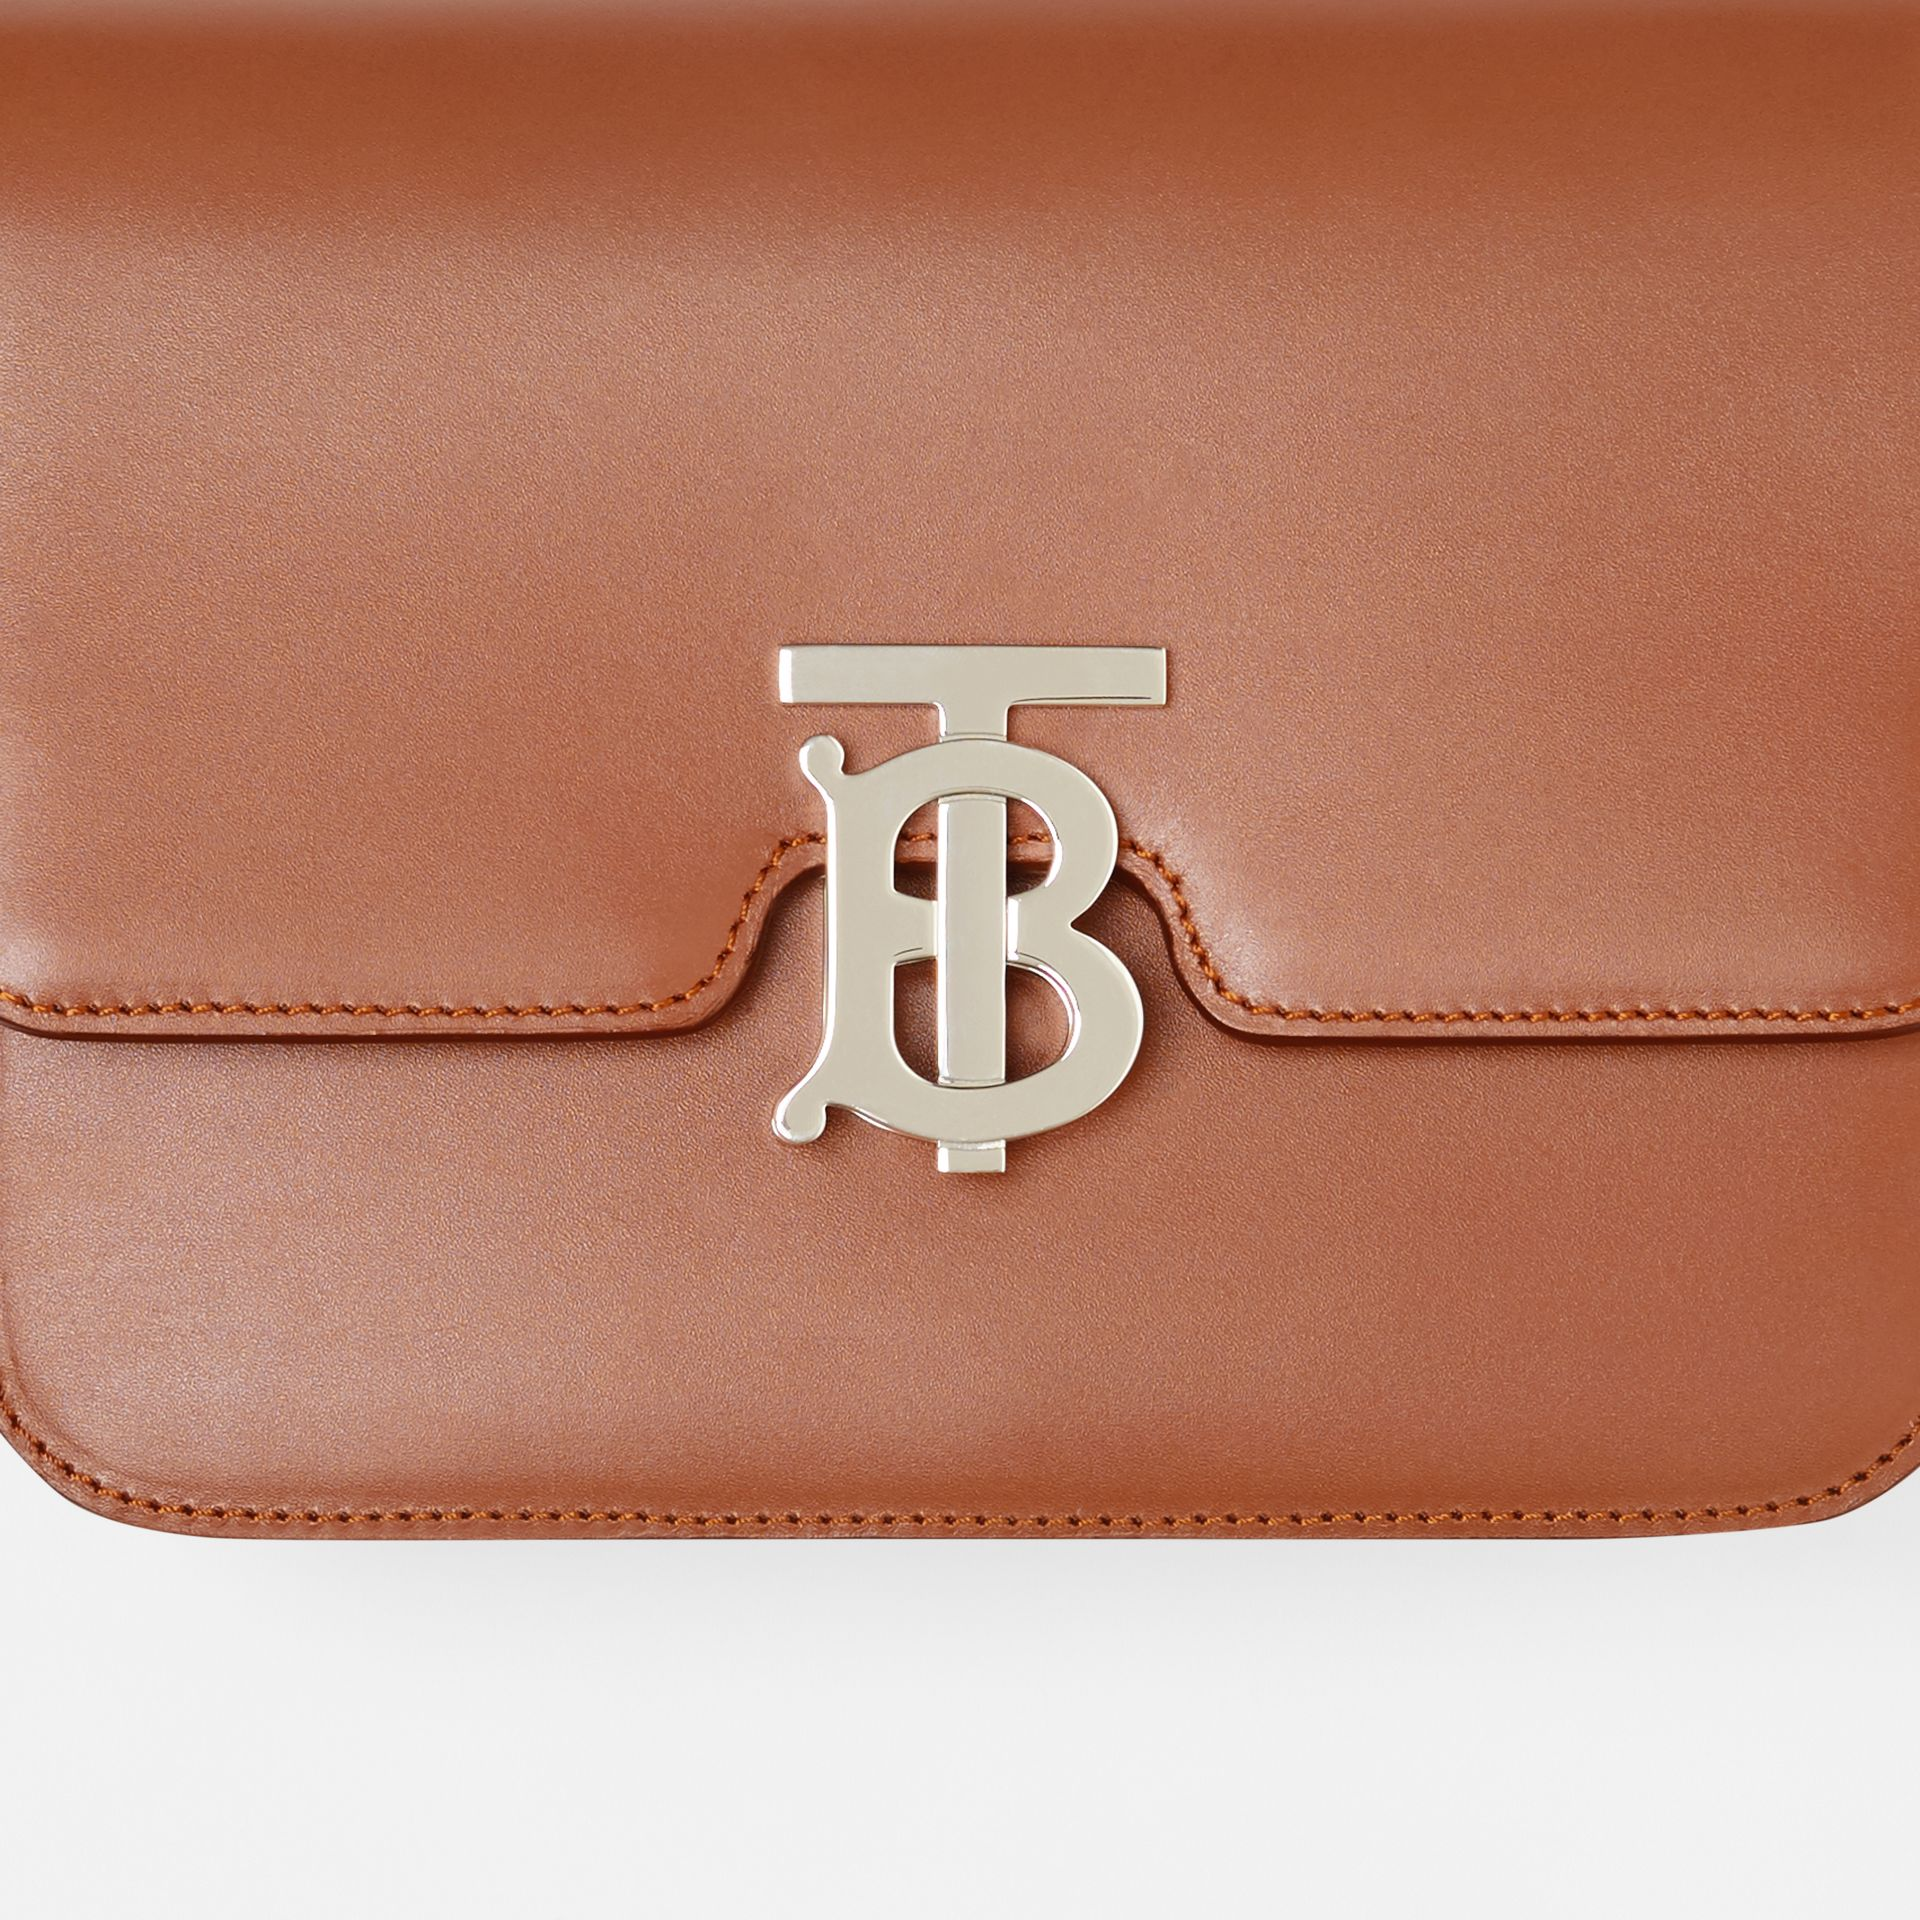 Small Leather TB Bag in Malt Brown - Women | Burberry United Kingdom - gallery image 1